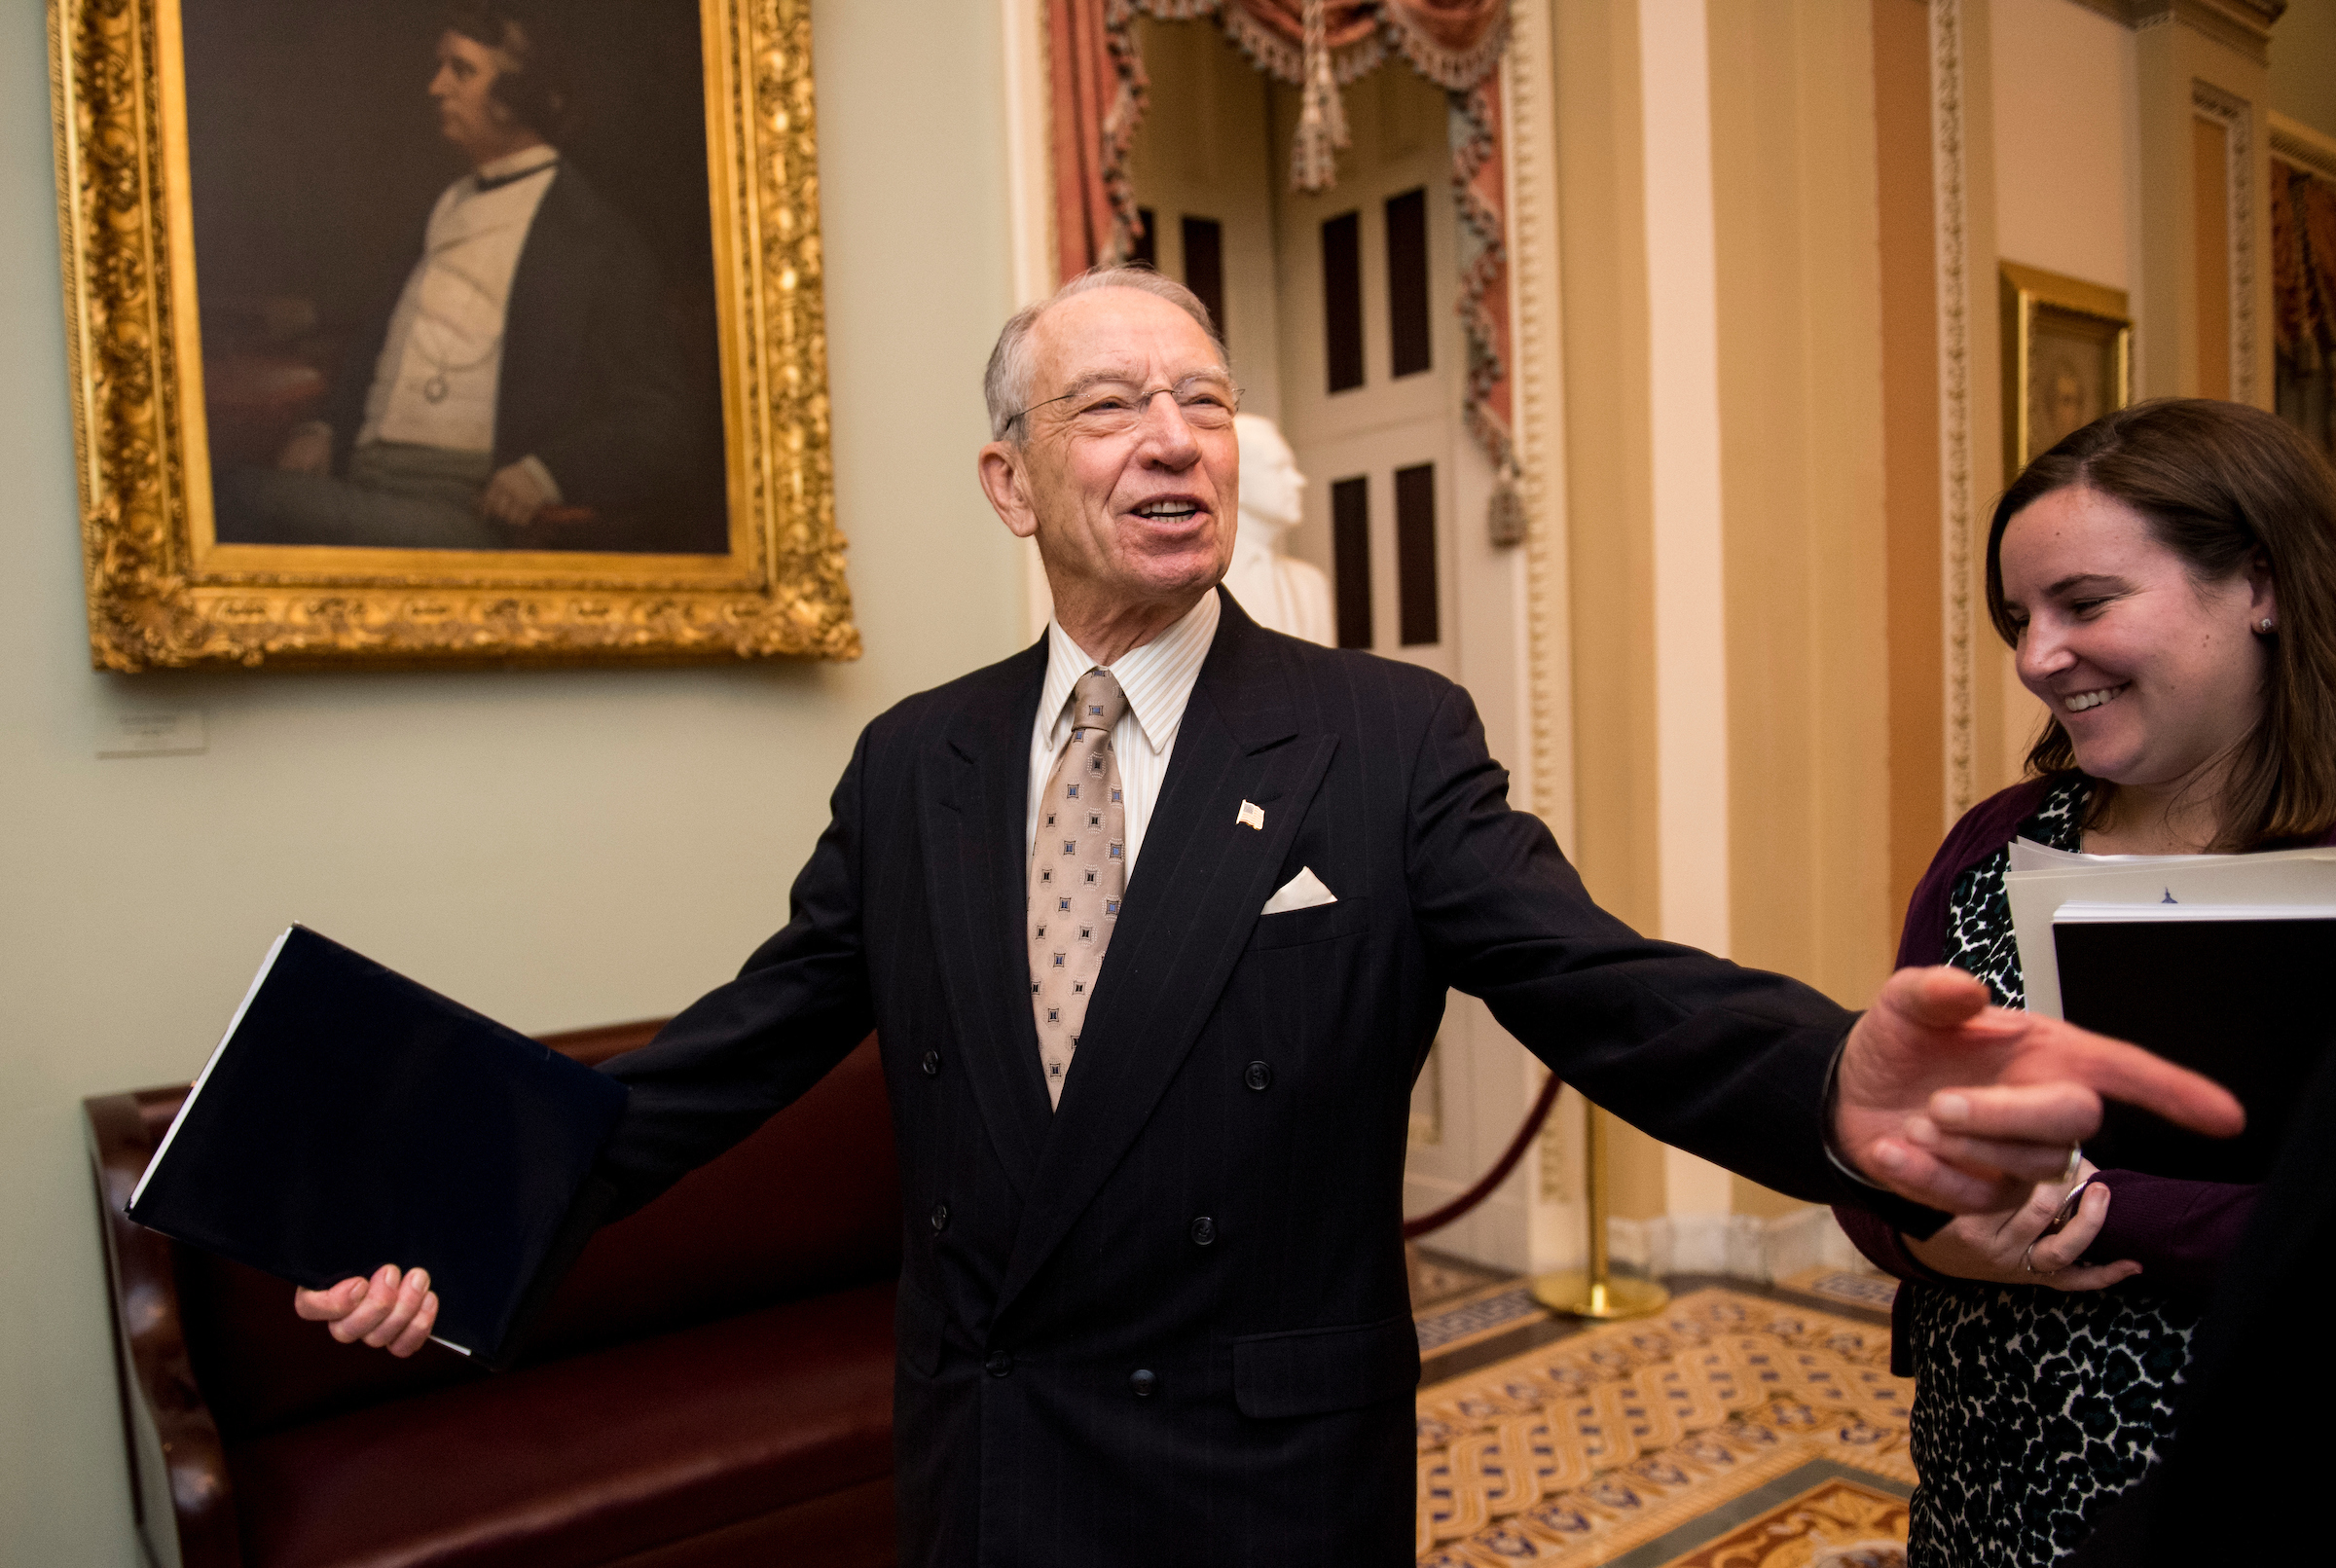 UNITED STATES - FEBRUARY 14: Sen. Chuck Grassley, R-Iowa, speaks with reporters as he arrives for the Senate Republicans' lunch in the Capitol on Wednesday, Feb. 14, 2018. (Photo By Bill Clark/CQ Roll Call)